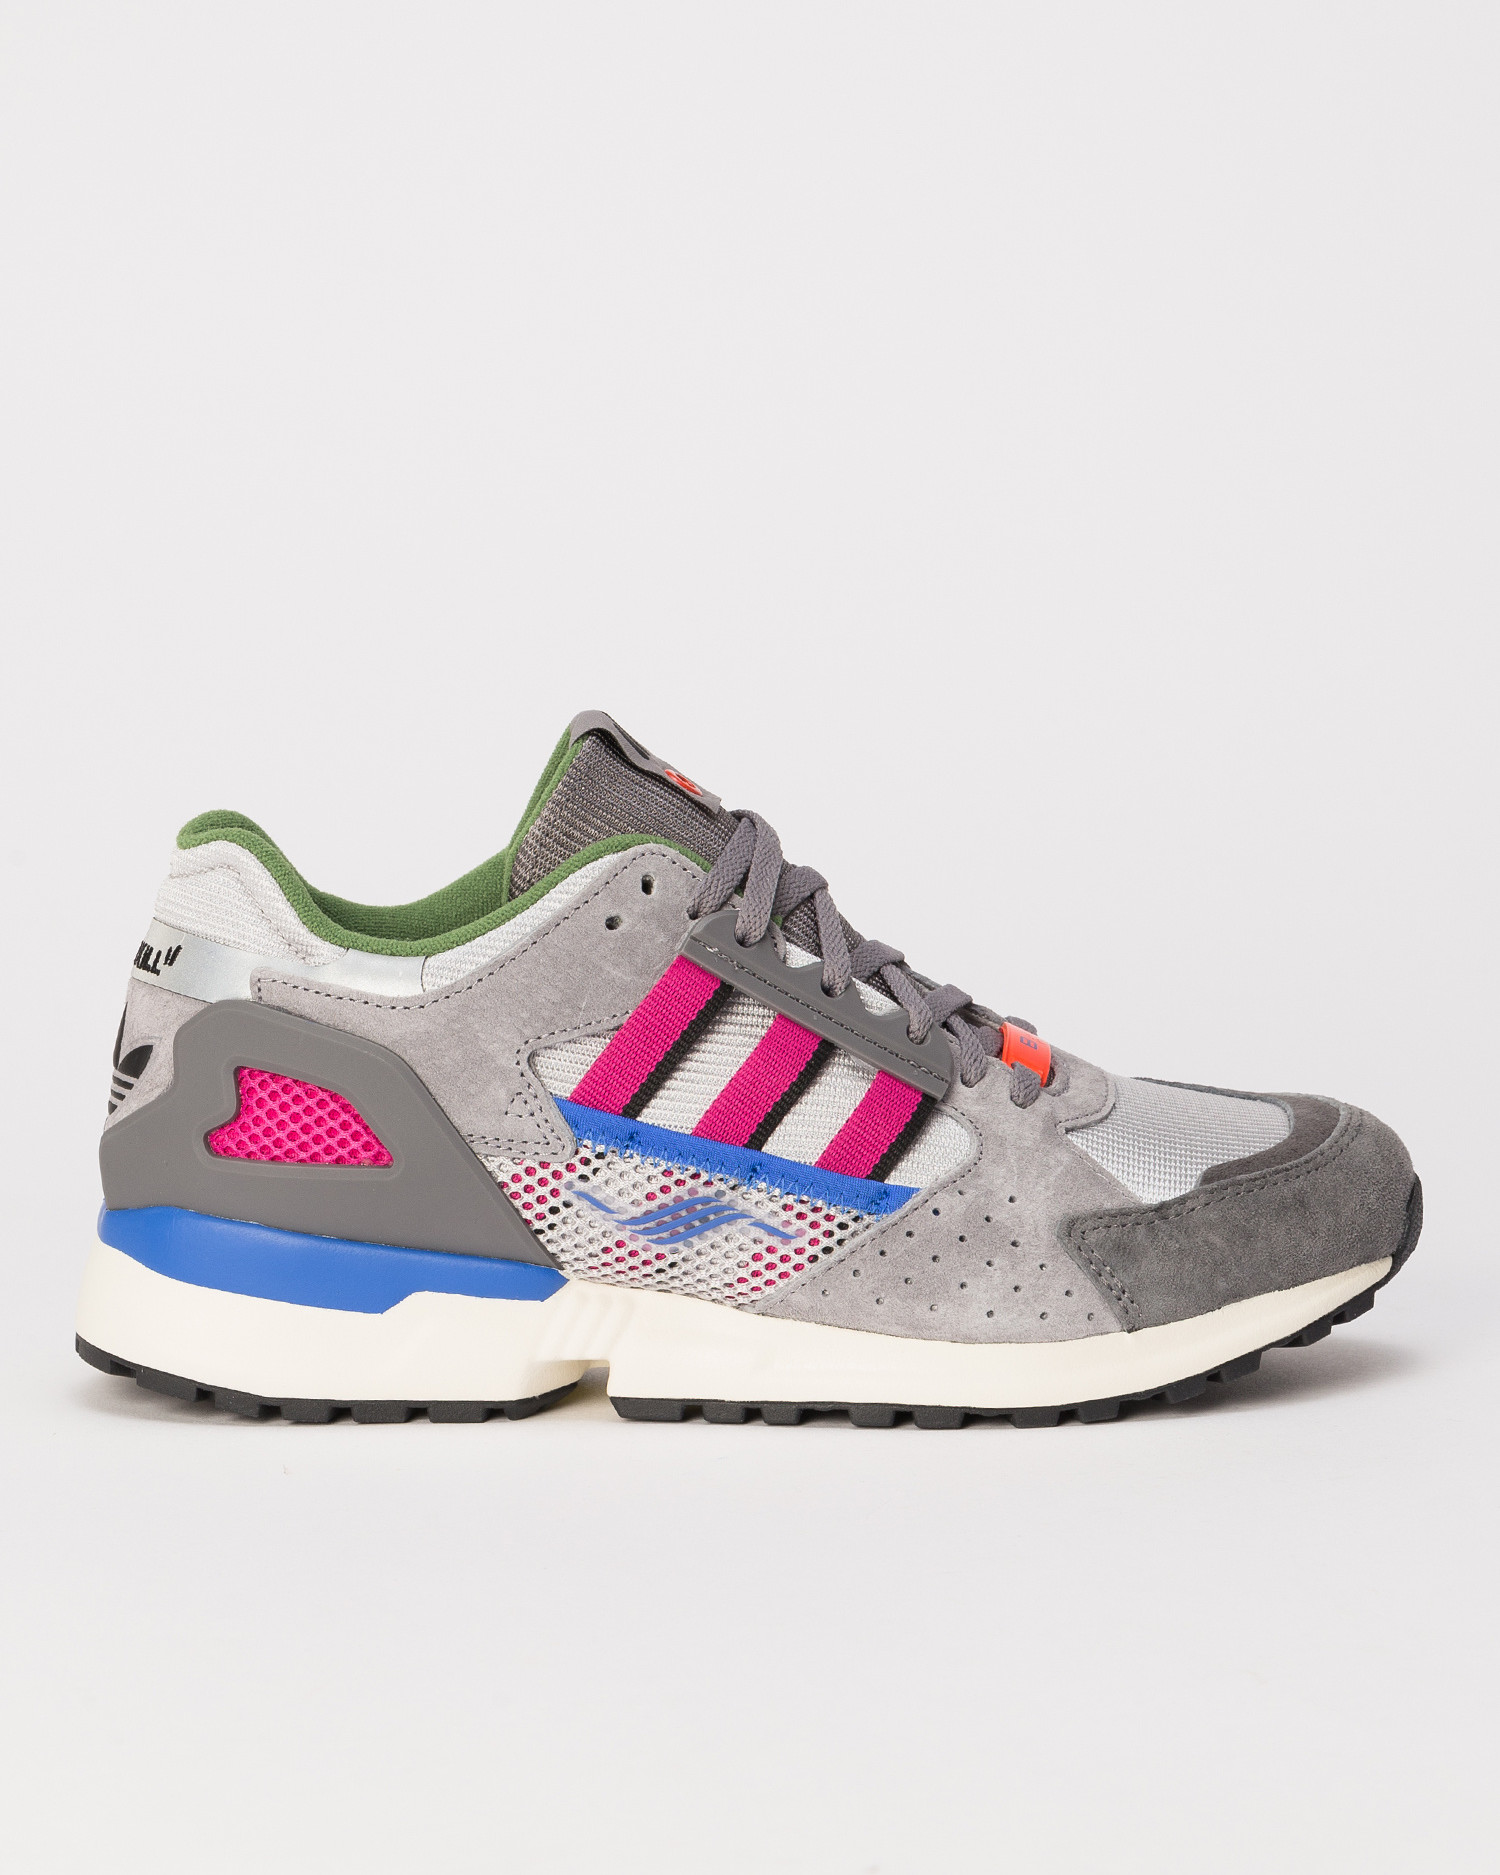 Adidas ZX 10.000-C OVERKILL Grey Two F17/Supplier Colour/Supplier Colour